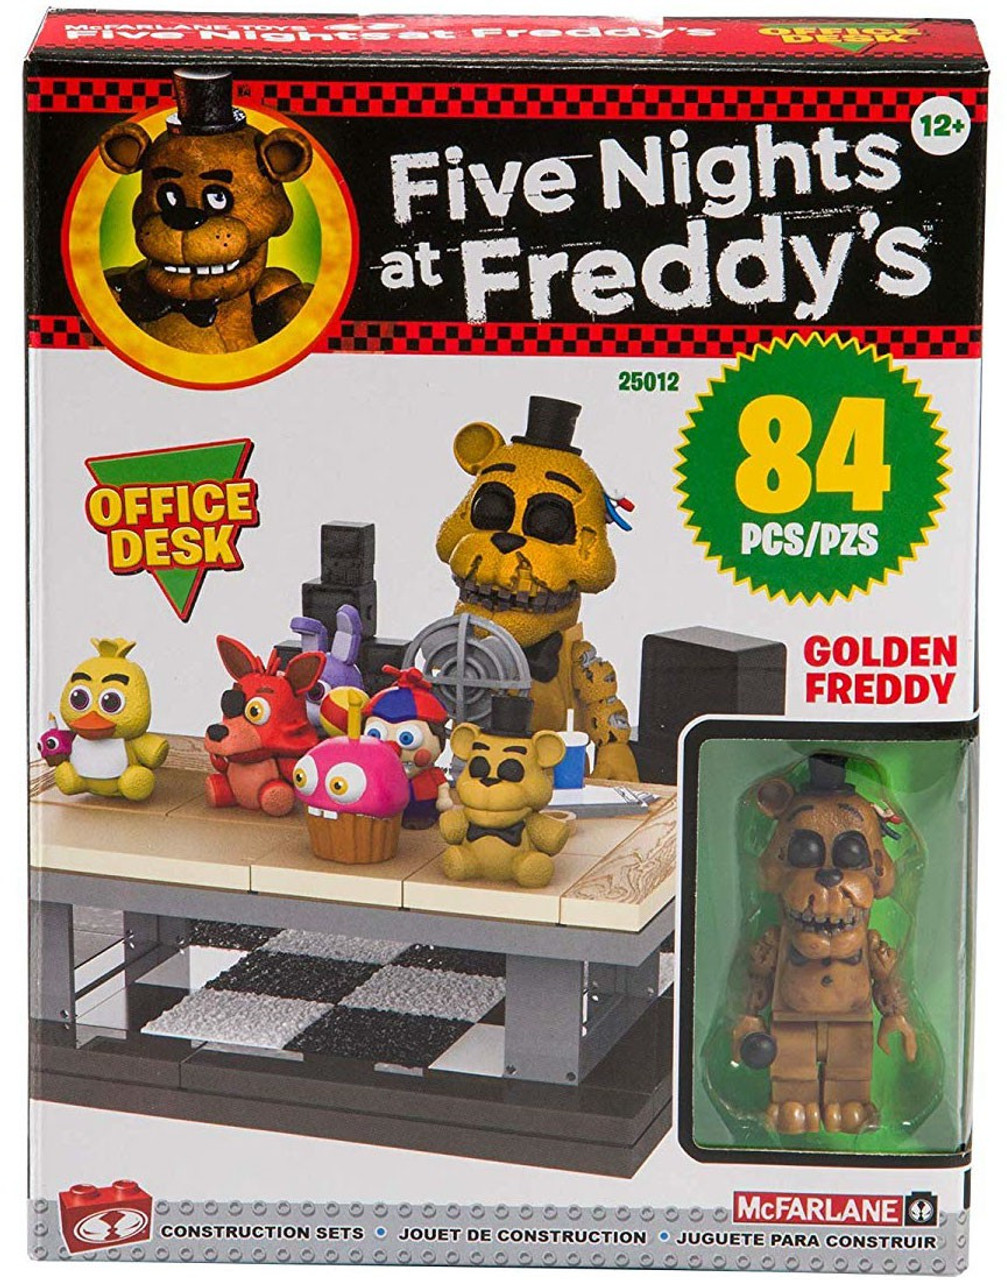 Finding Springtraps Secret And Halloween Event Badges In Roblox Mcfarlane Toys Five Nights At Freddys Office Desk Build Set Golden Freddy Toywiz